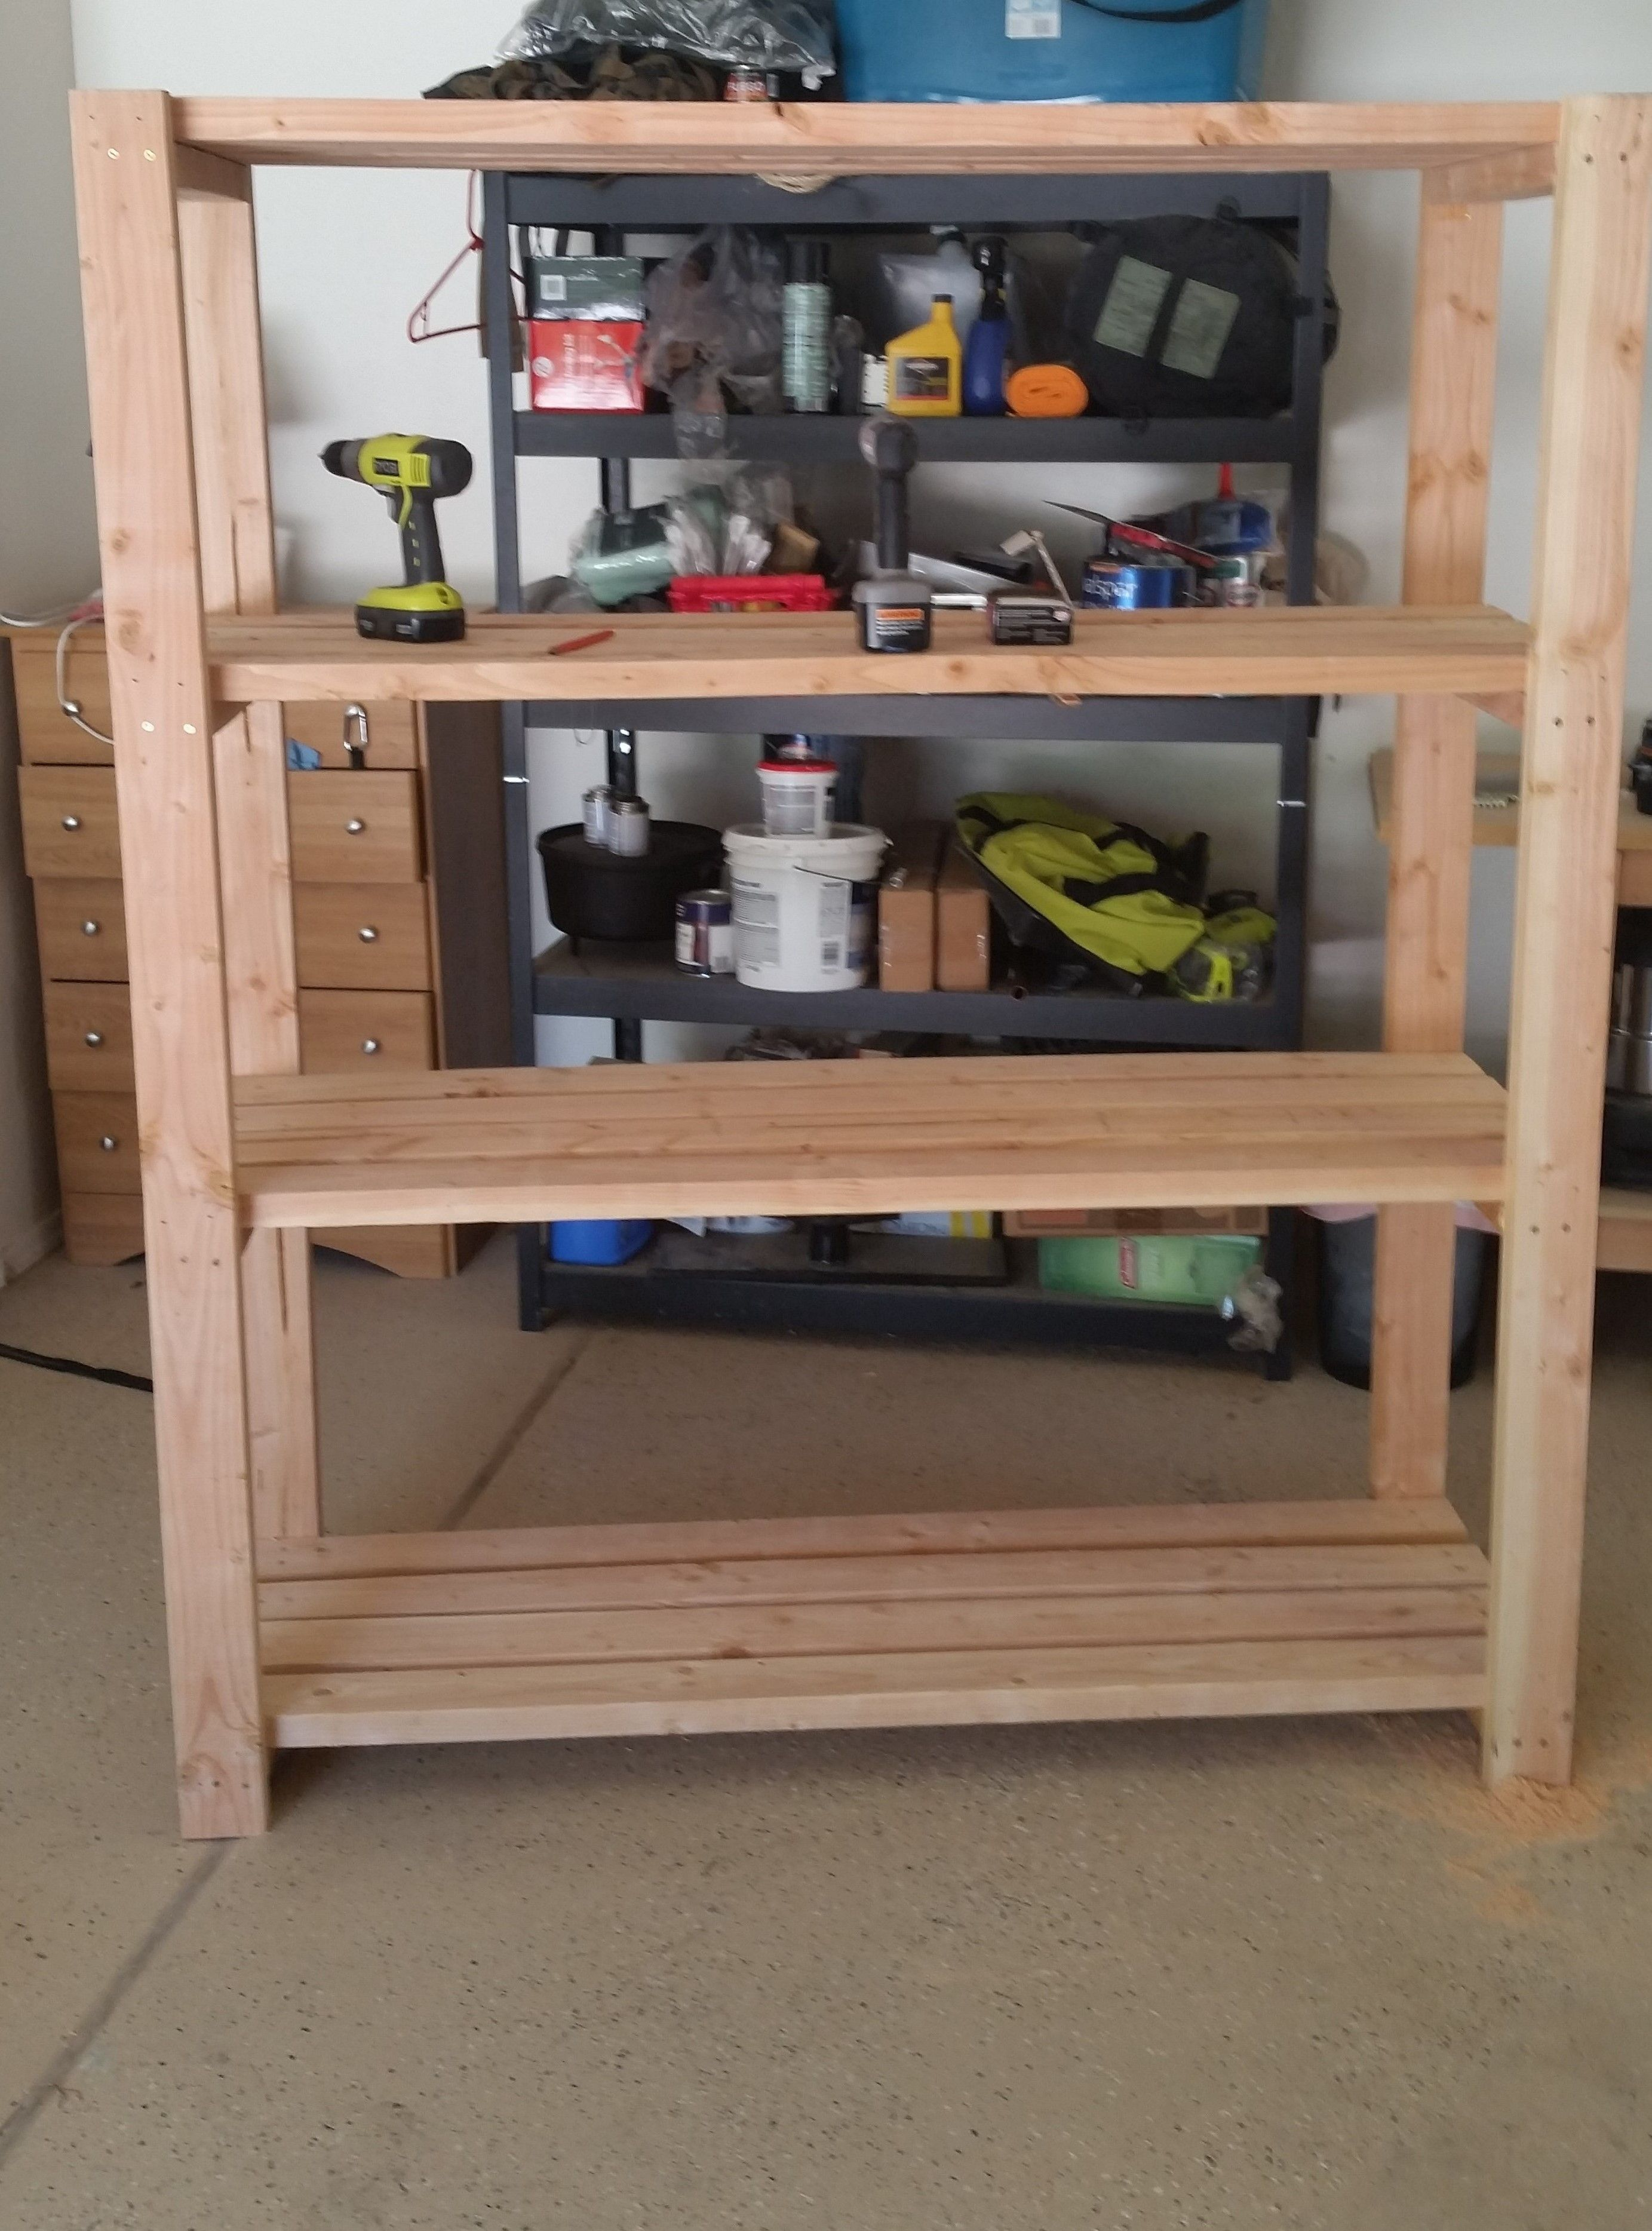 2x4 garage shelving Do It Yourself Home Projects from